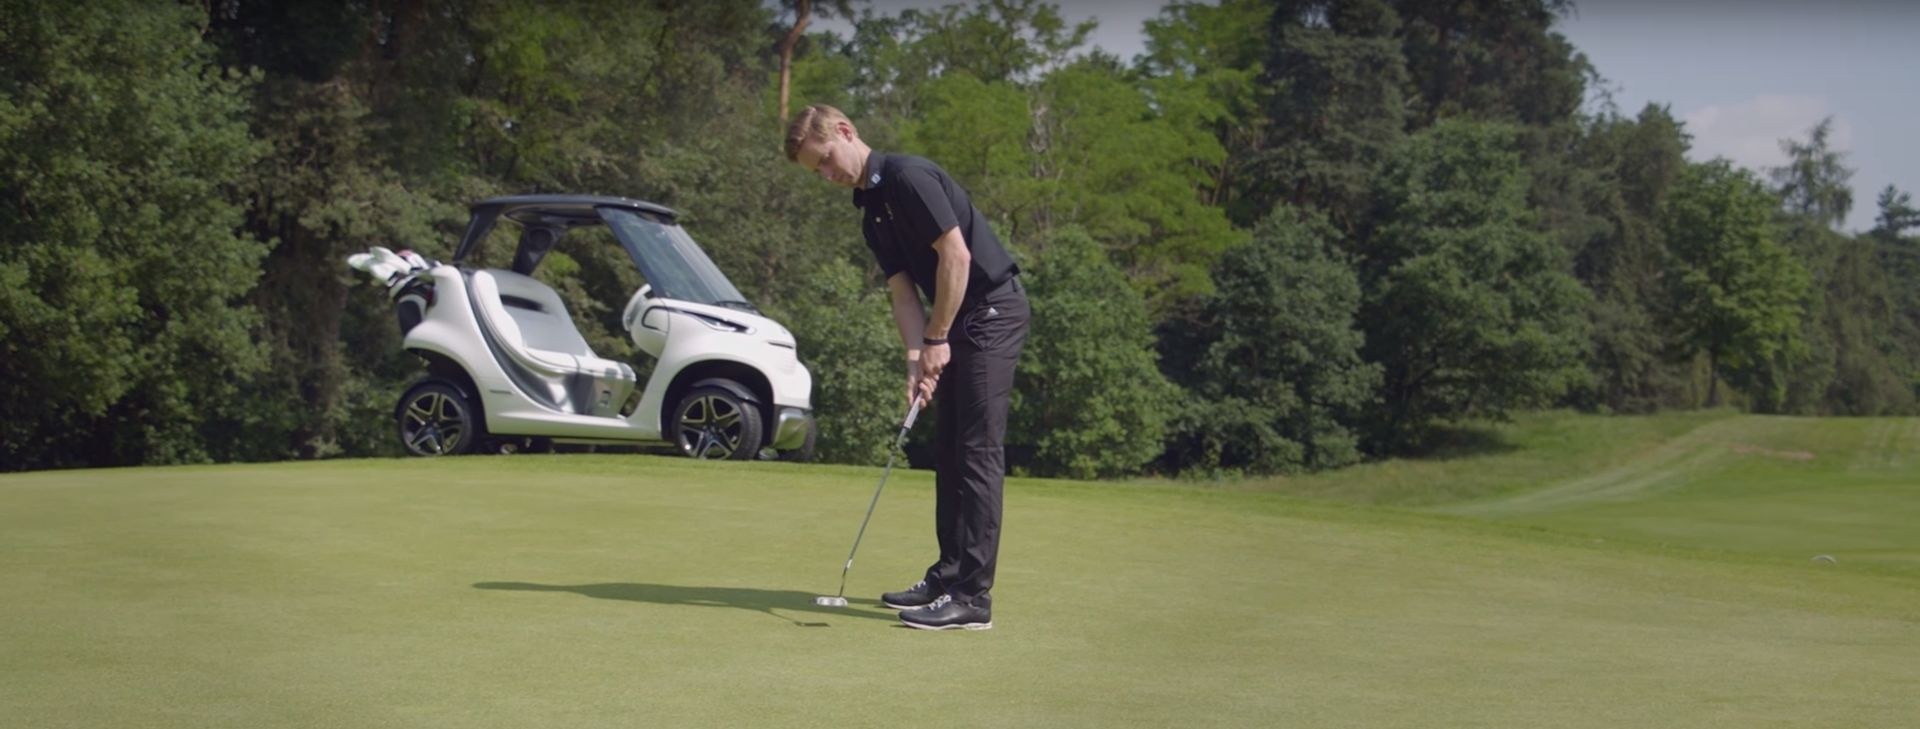 VIDEO: Mercedes i Garia proizveli 'najbolje golf vozilo u povijesti'